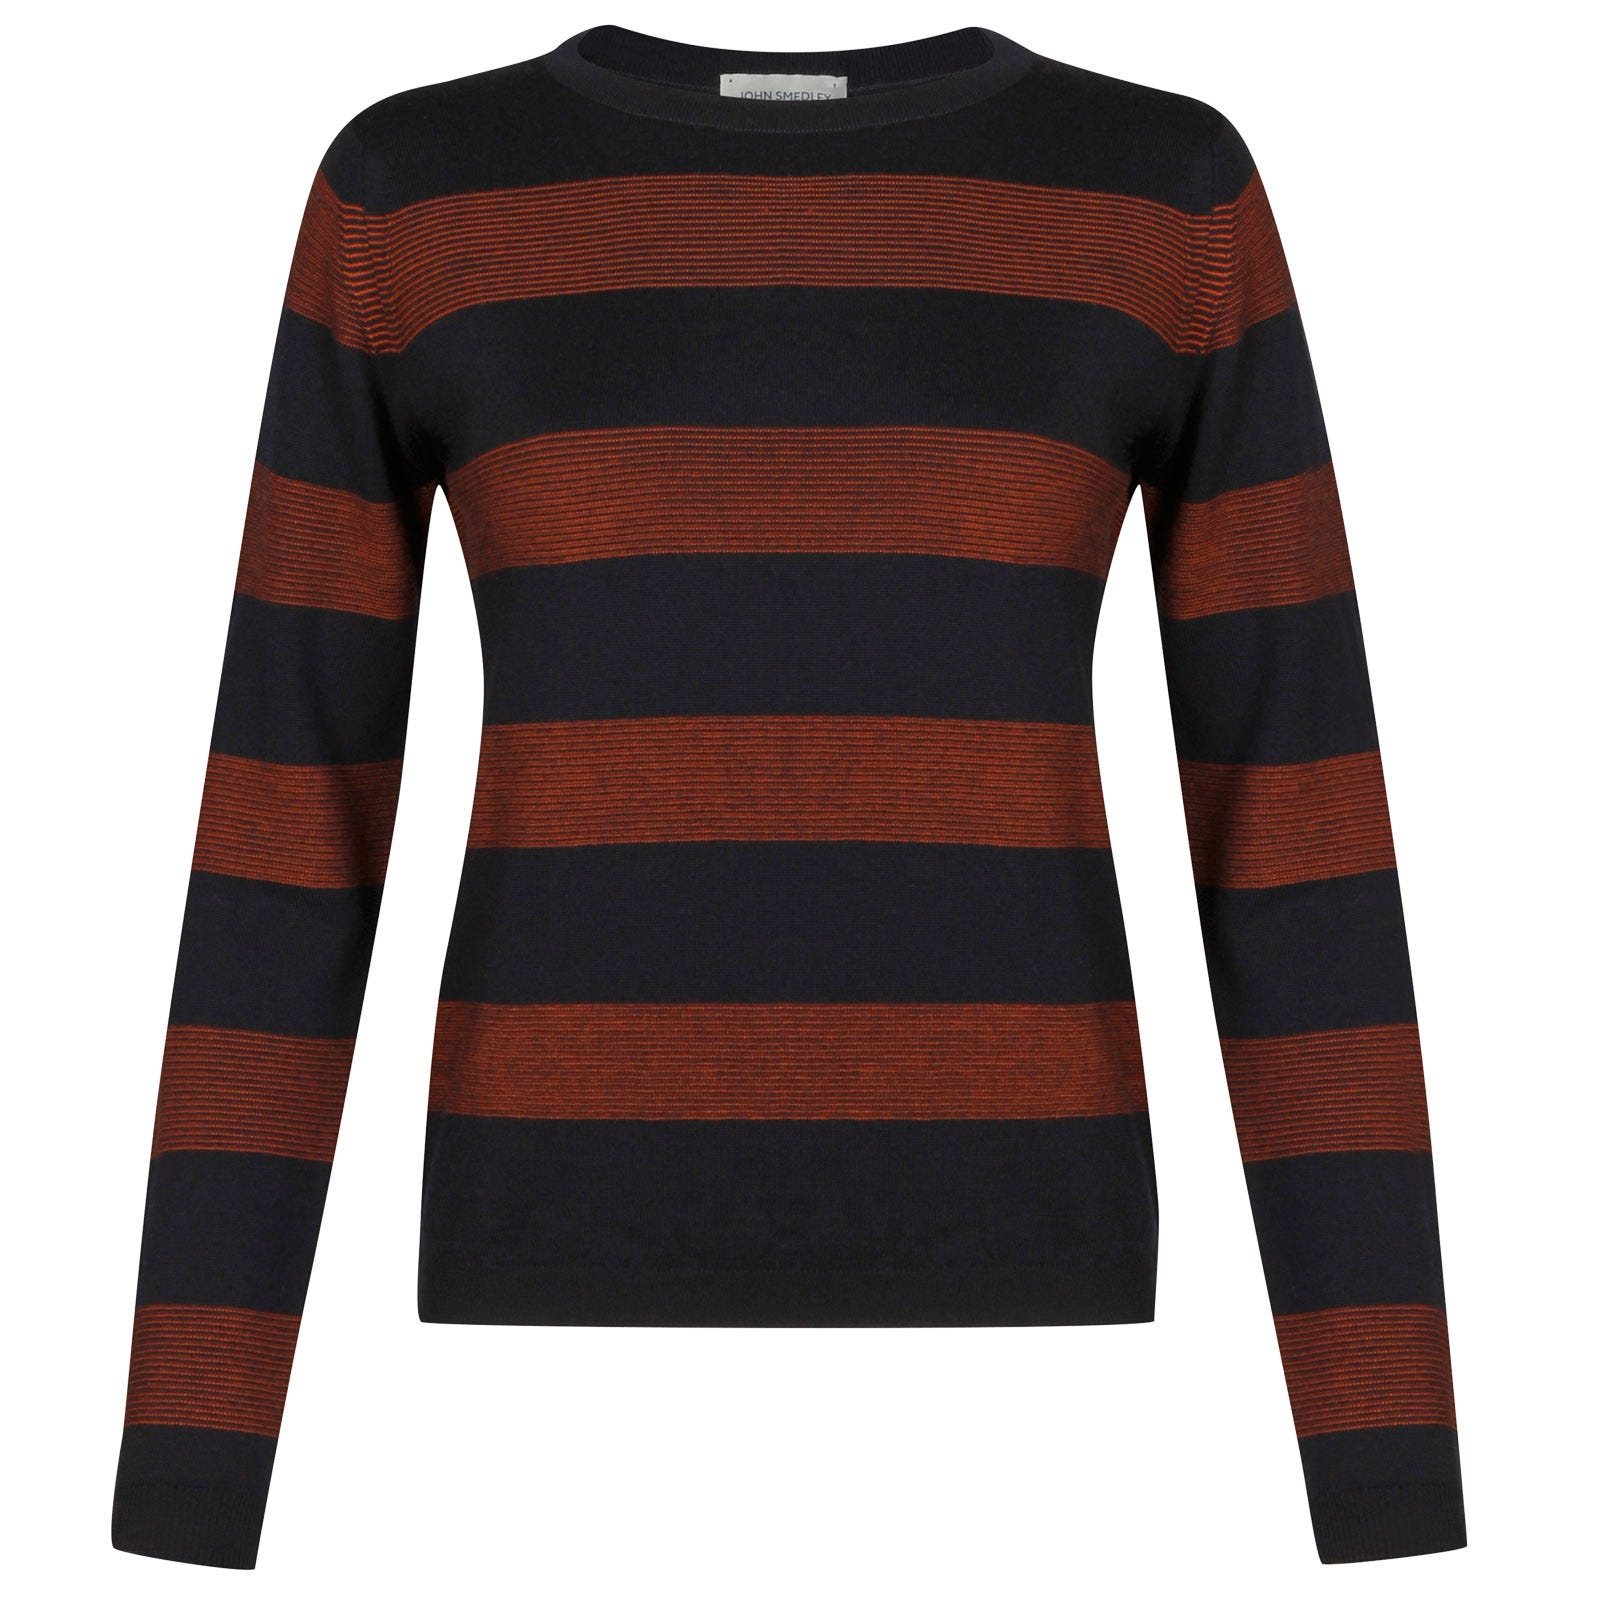 John Smedley larch Merino Wool Sweater in Midnight/Flare Orange-M